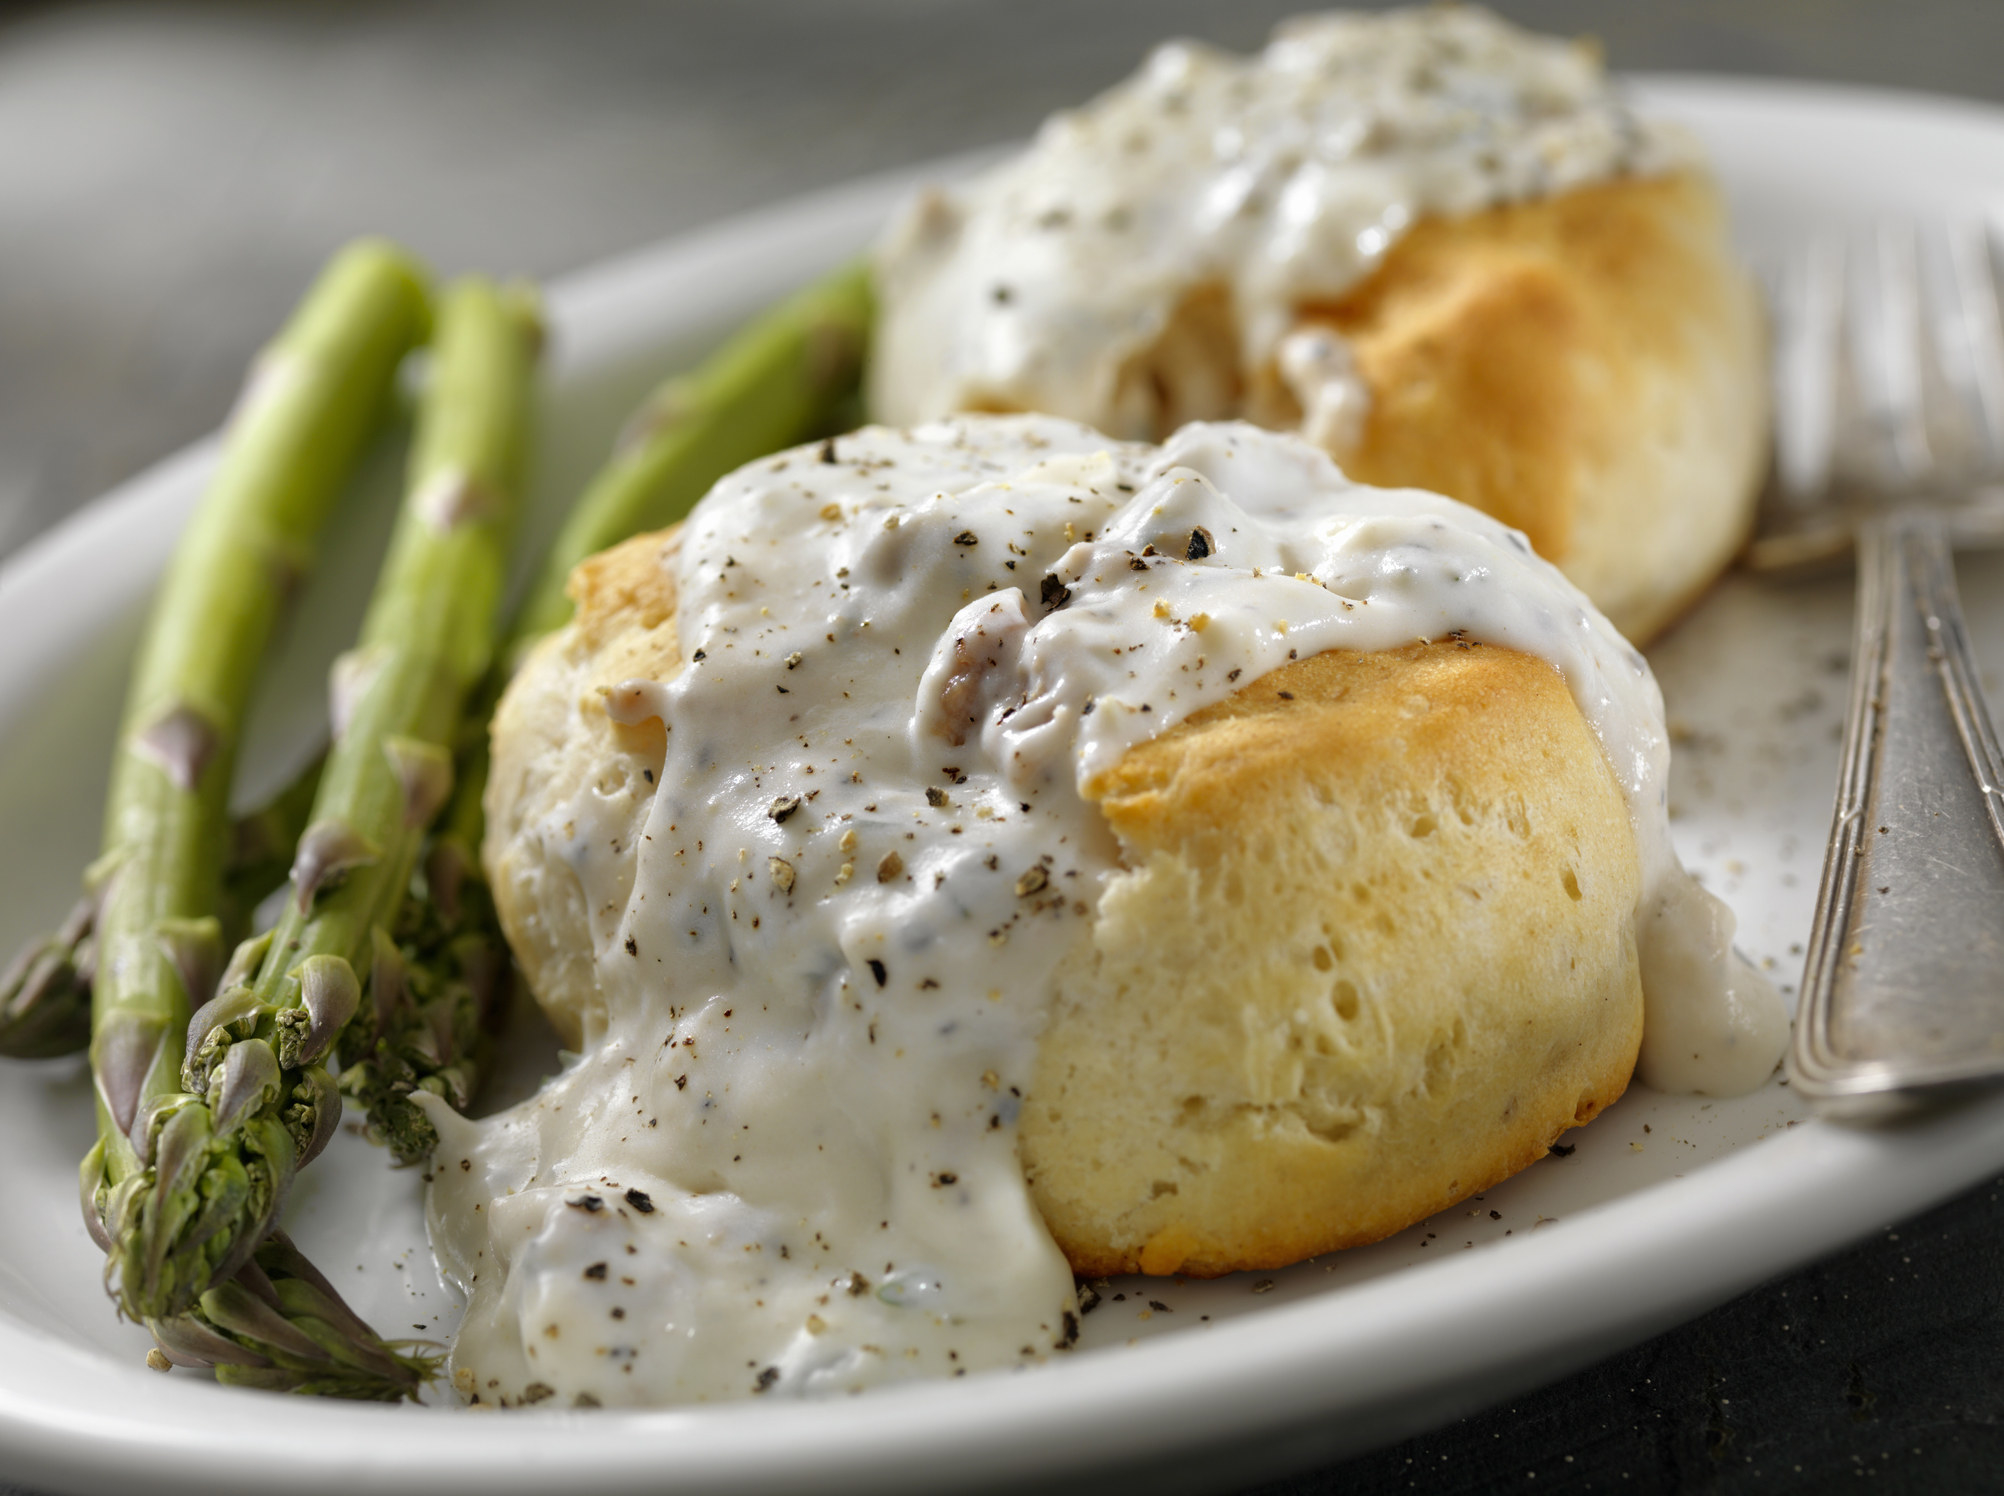 A plate of asparagus and biscuits with gravy